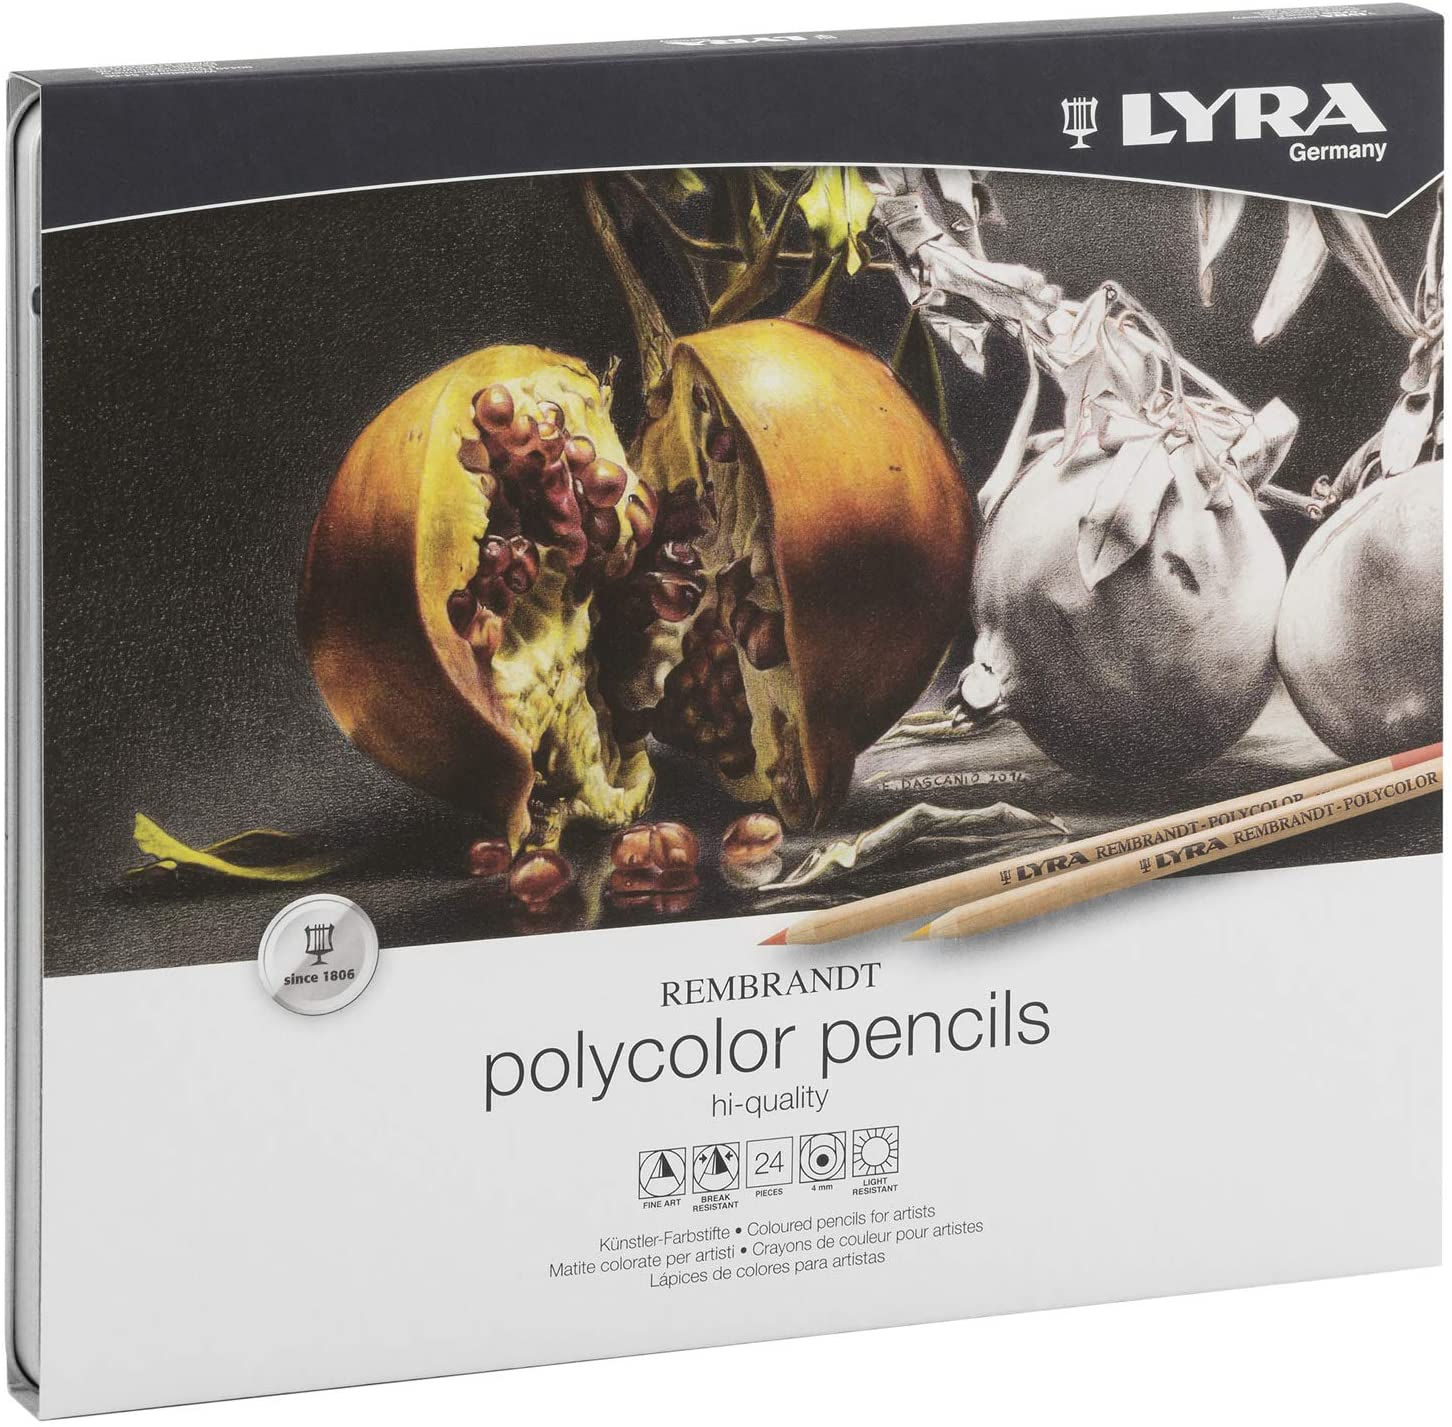 Lyra Rembrandt Polycolor Colored Pencils, Set of 24, Assorted Colors (2001240)